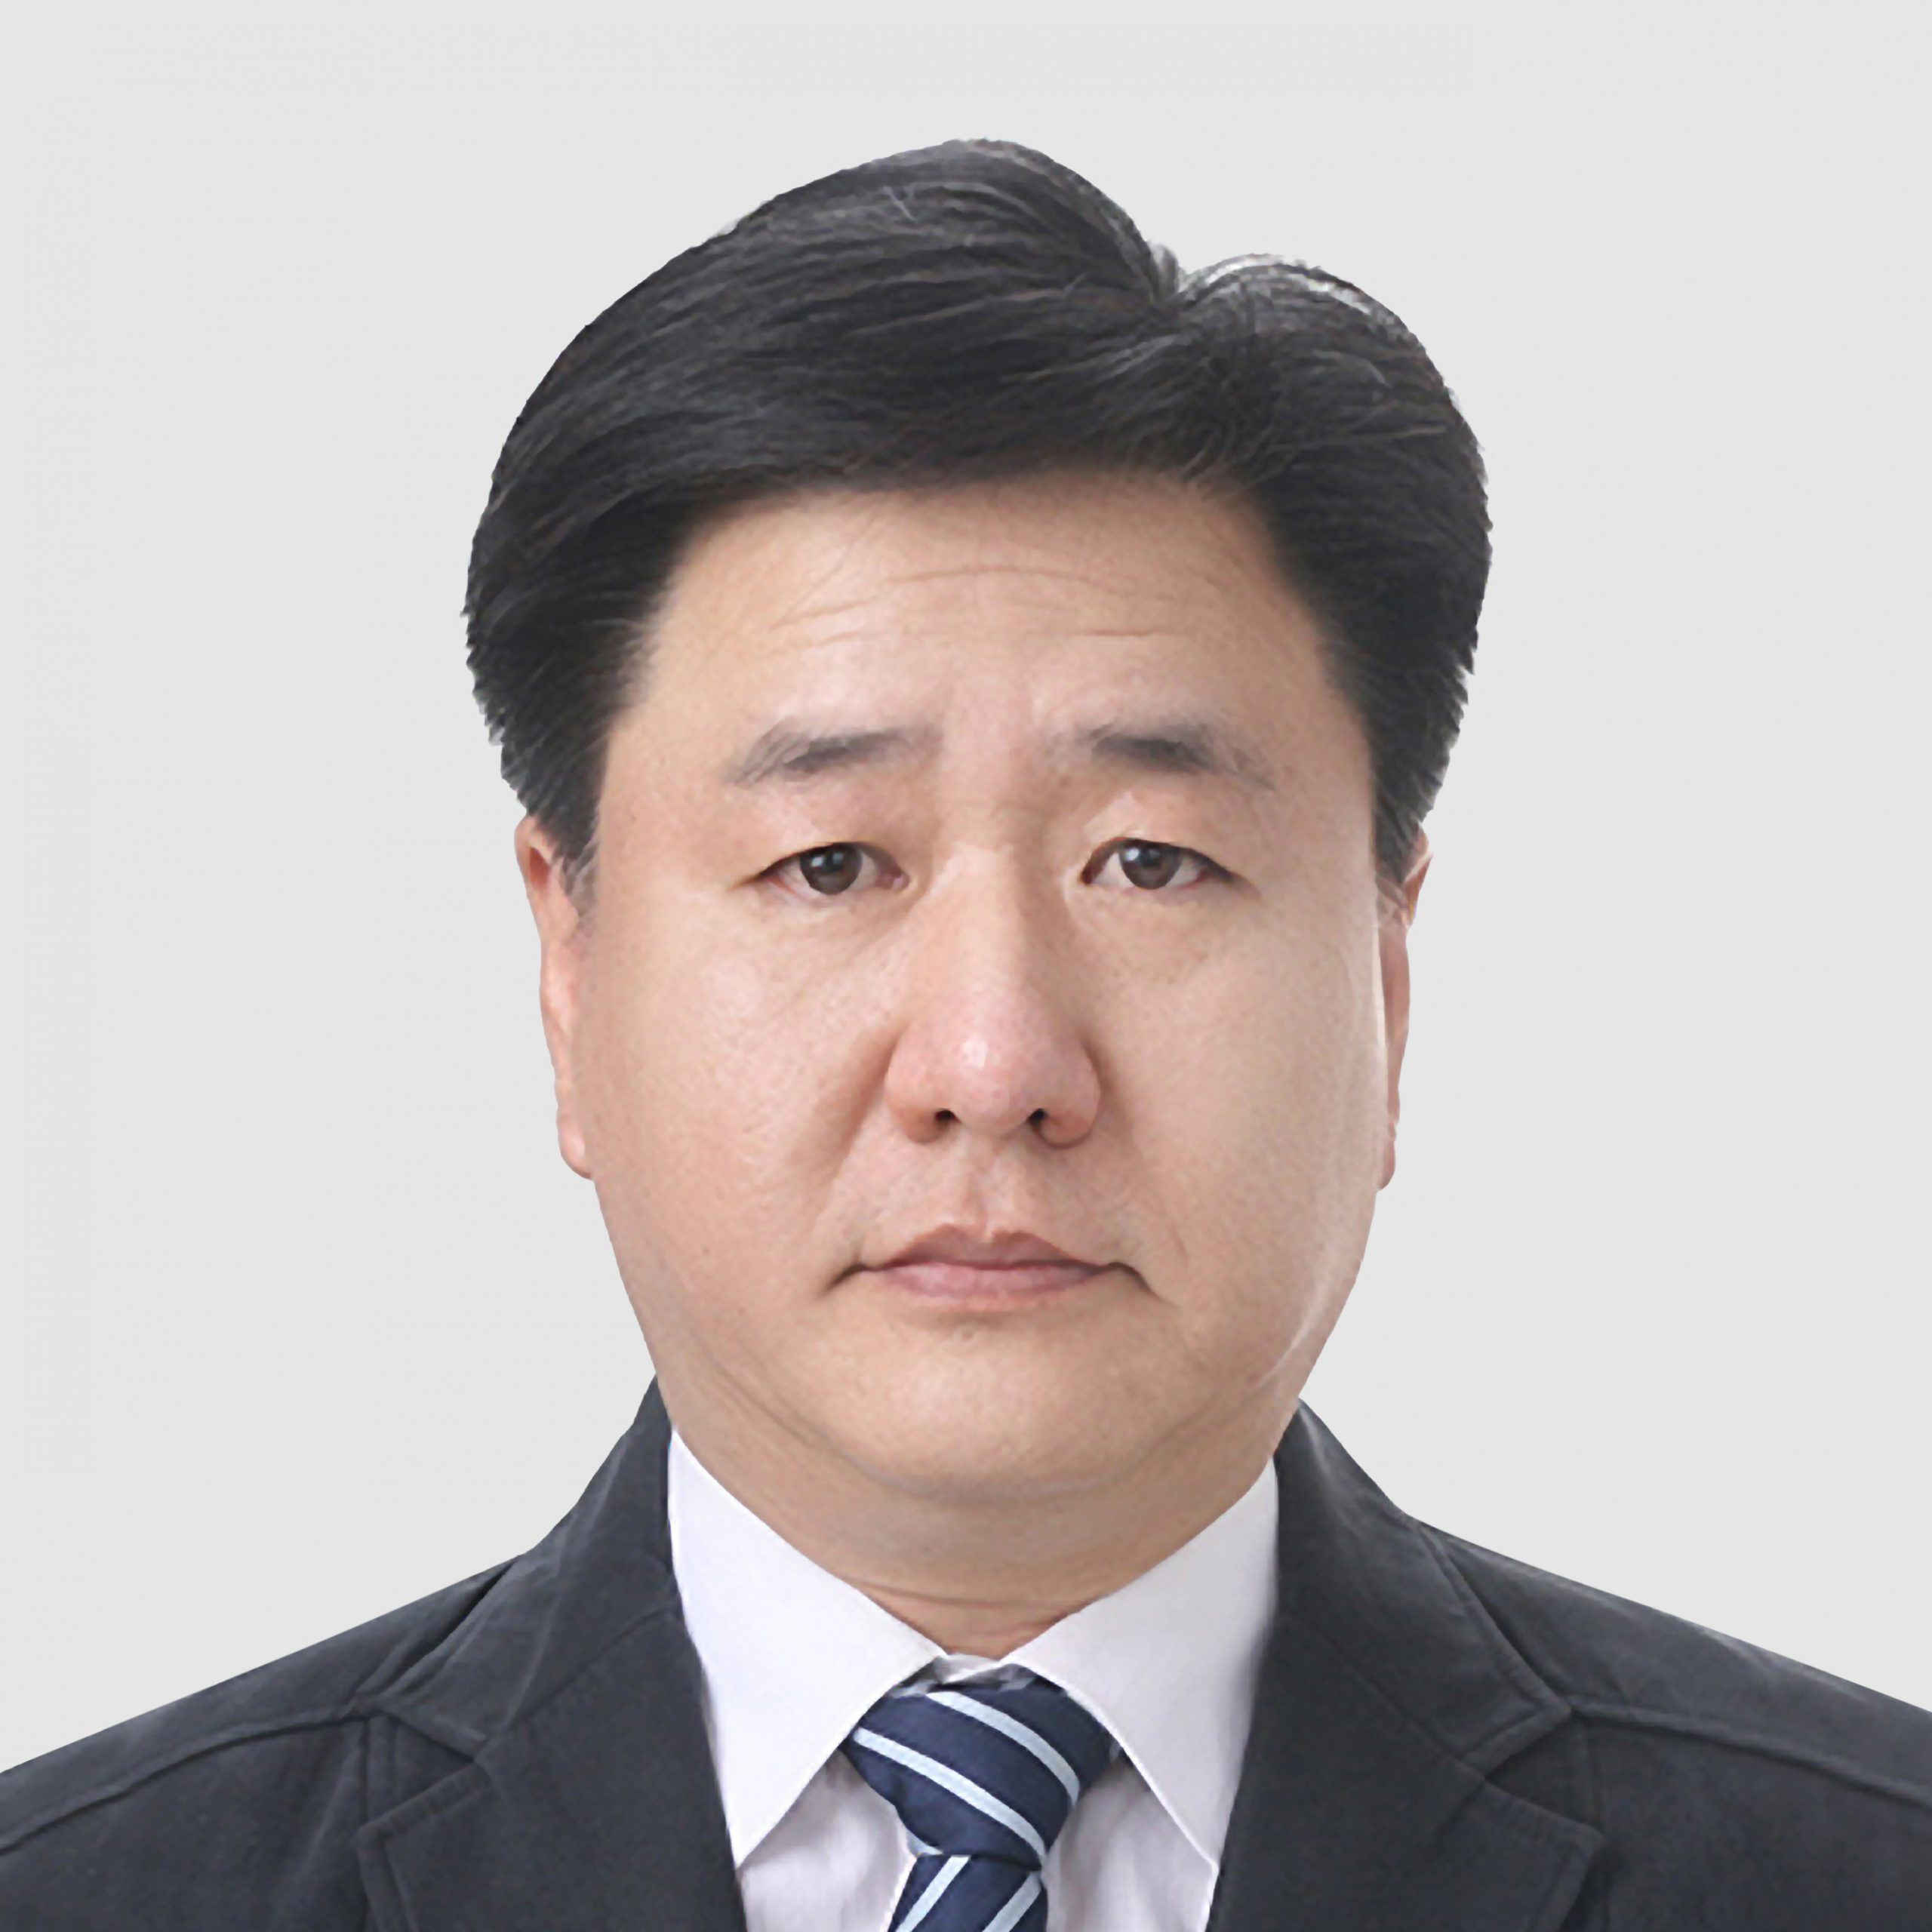 Joonhee (Albert) Lee is the Managing Director, Essex Furukawa Magnet Wire China, a role that focuses on the automotive industry with a specific emphasis on traction motors. It is a position that he transitioned into after the completion of the Essex Furukawa Joint Venture. Prior to this, Lee spent four years as Executive Director of Technology for Essex Magnet Wire and over the last quarter century Lee has been involved in developing new technology with a focus on the automotive industry. He has improved magnet wire property design for motor applications, as well as improved properties for enameling. Lee obtained his Master's Degree in Industrial Chemistry at Kyungpook National University in South Korea.